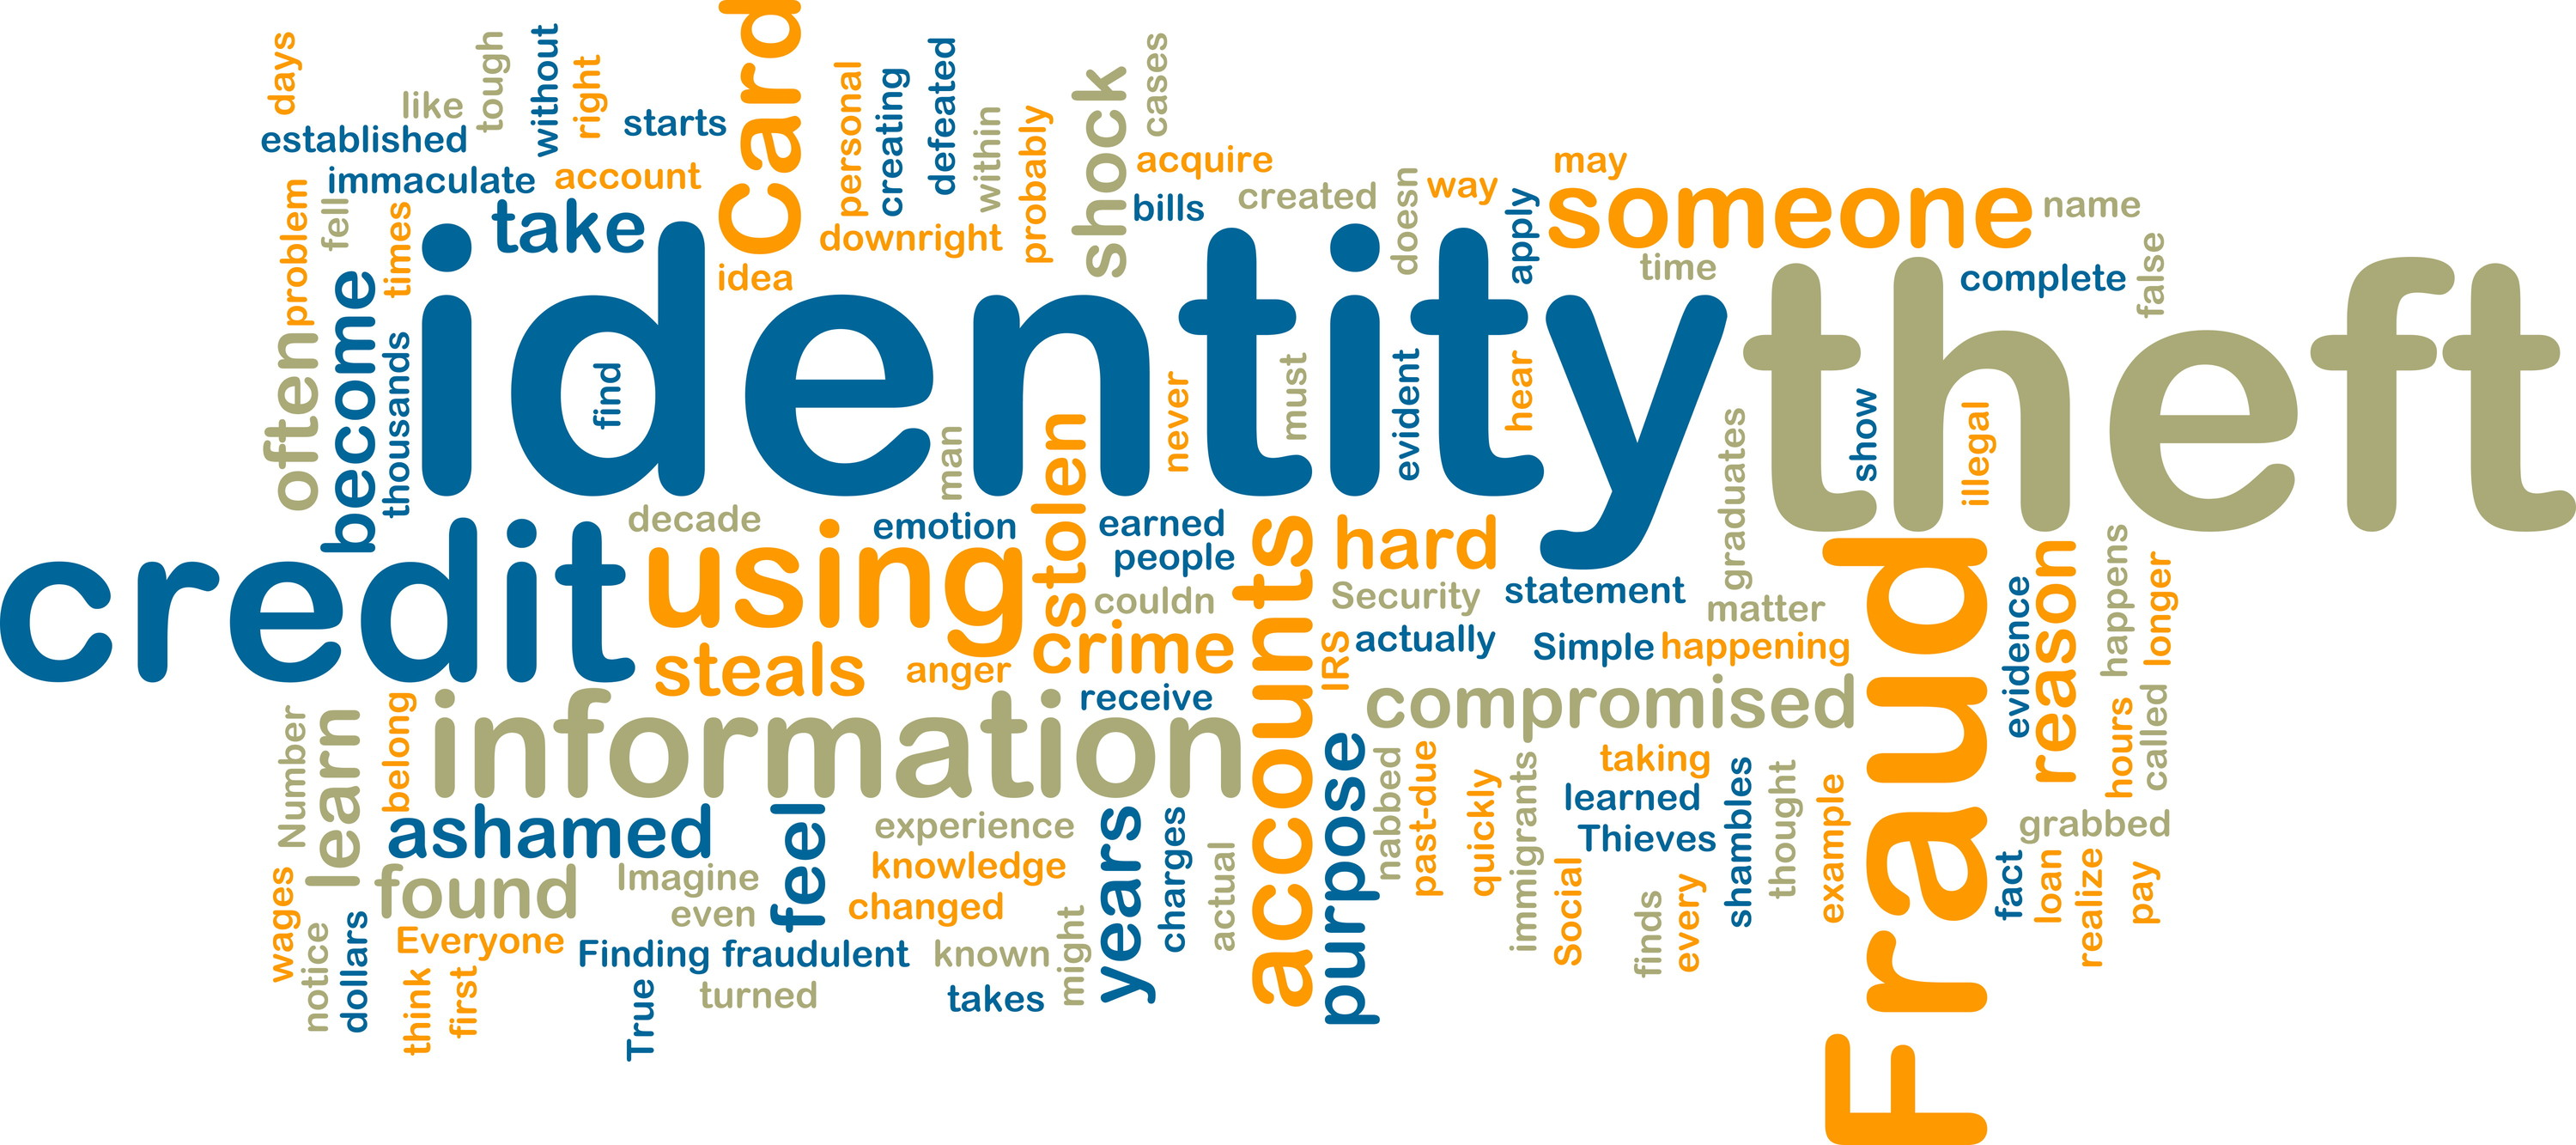 Protect Yourself Against Identity Theft is Always